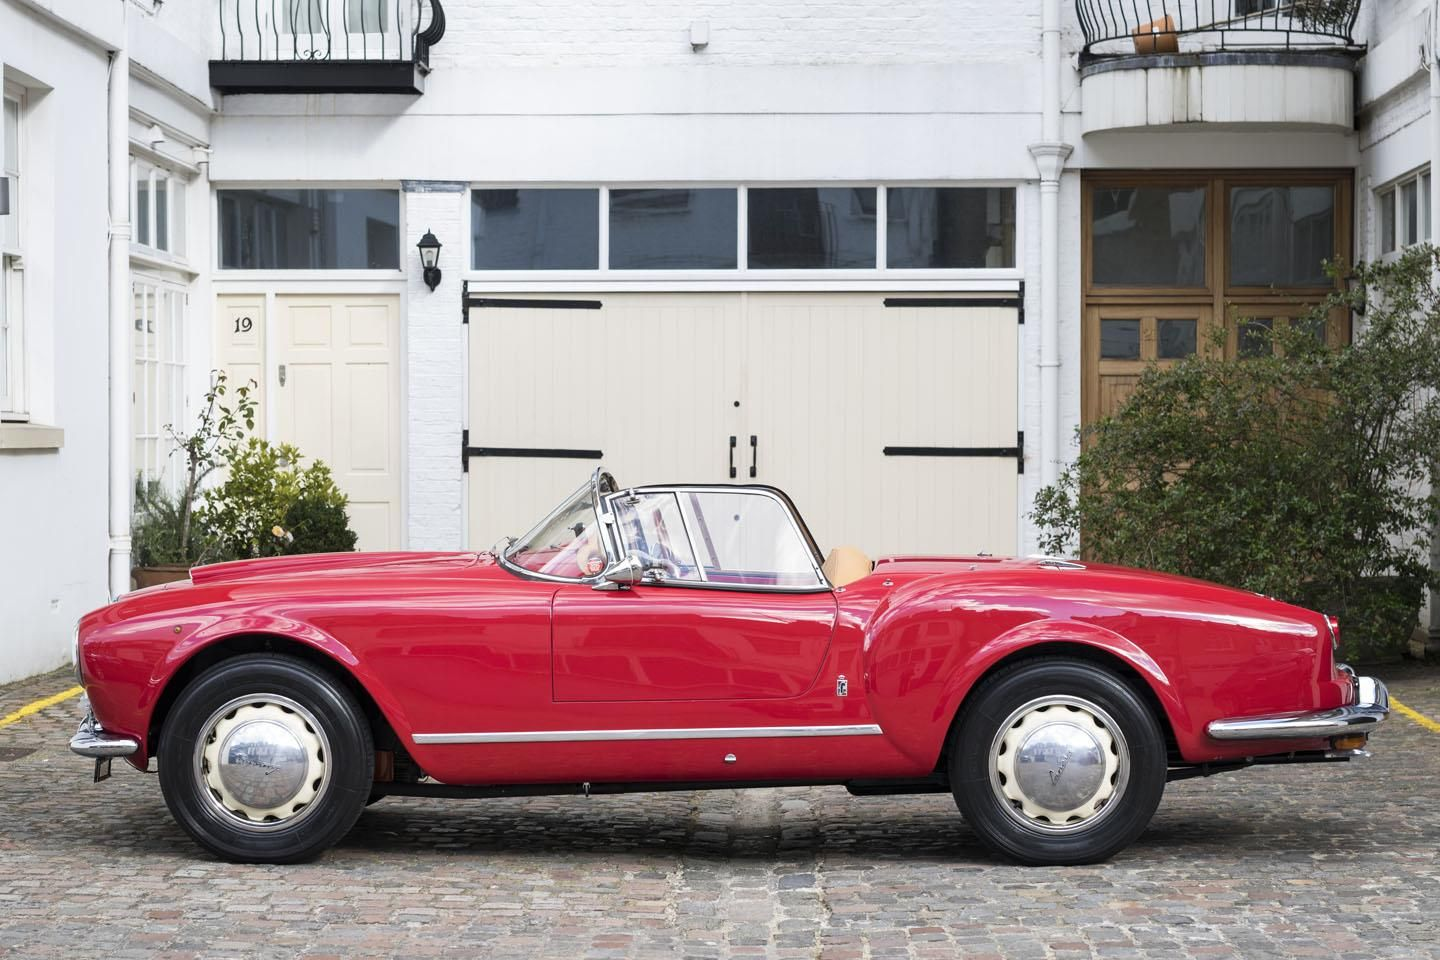 Used 1955 Lancia Aurelia for sale in London from Hexagon Classics ...